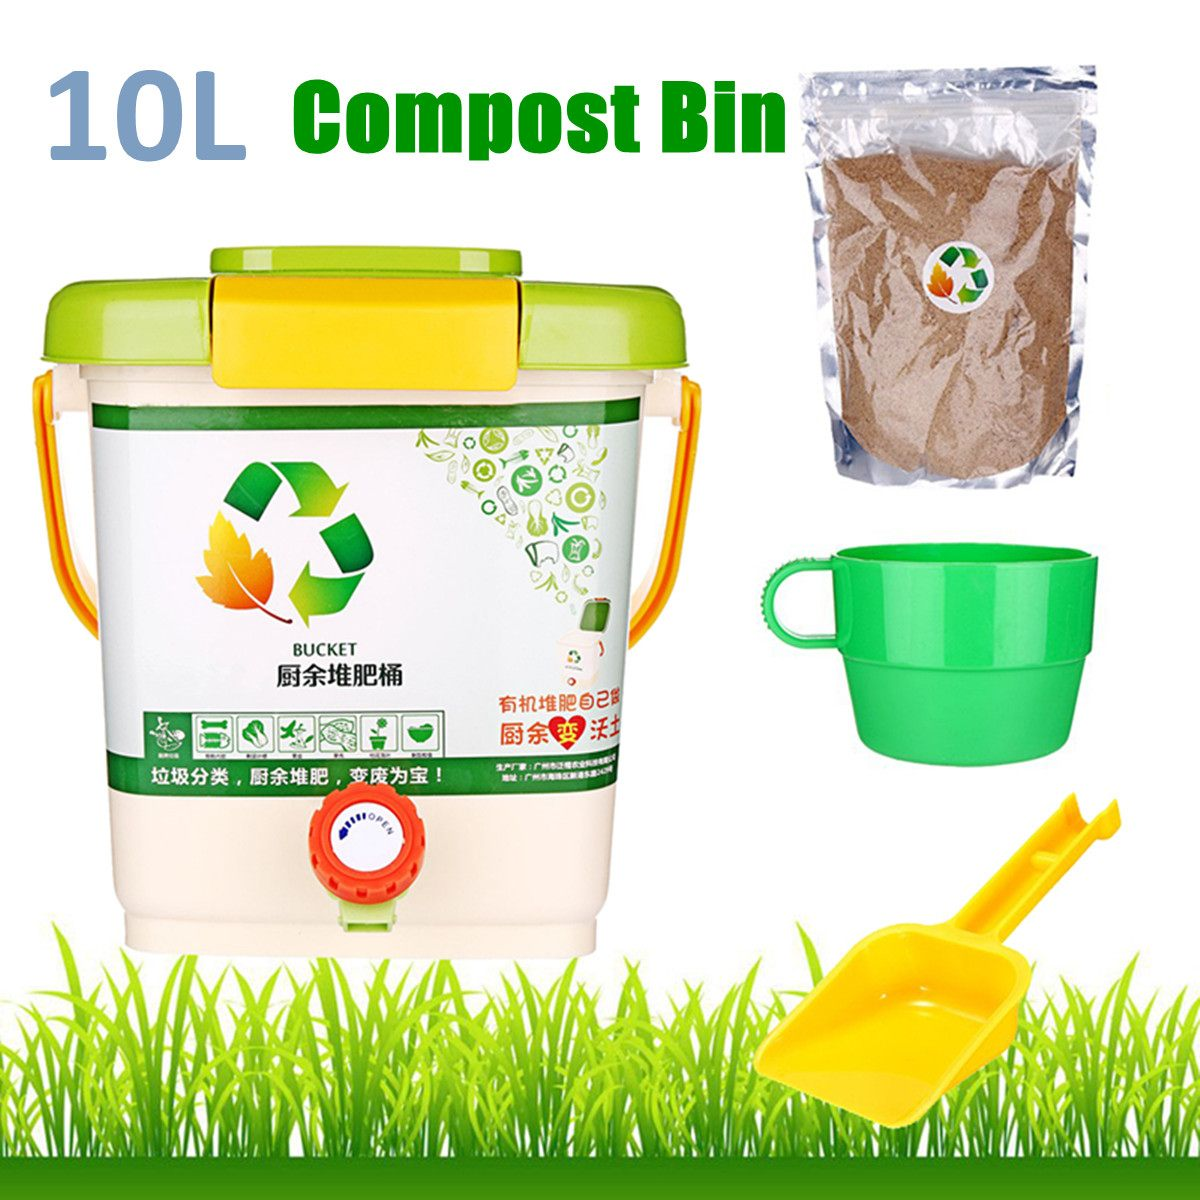 10L Kitchen Compost Bin Recycle Composter Aerated Compost Bin PP Organic Homemade Trash Can Bucket Kitchen Food Waste Bins|Waste Bins| |  - title=